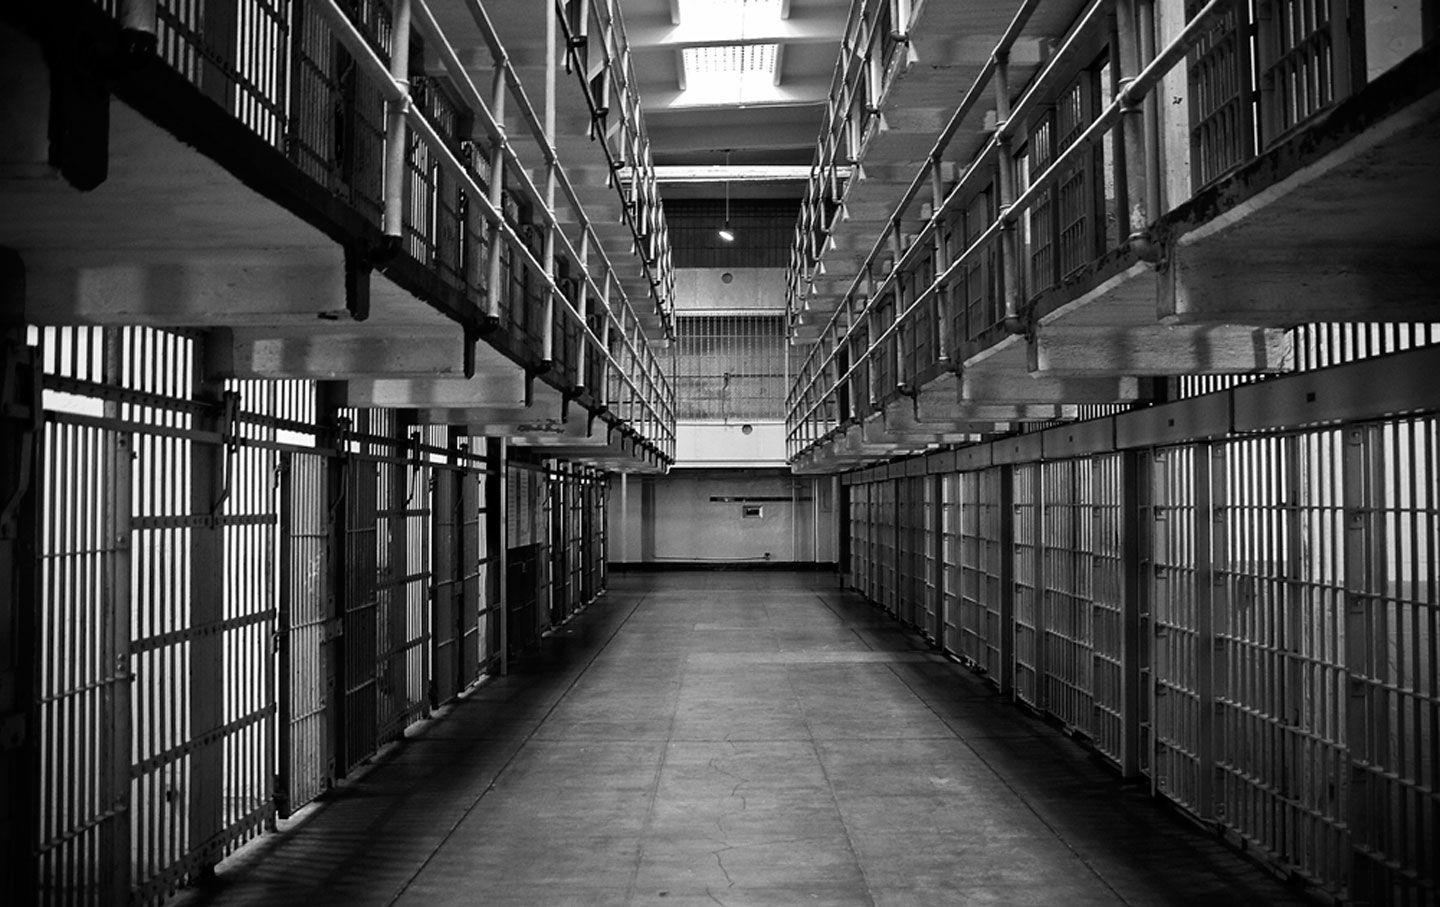 Photo of prison cells